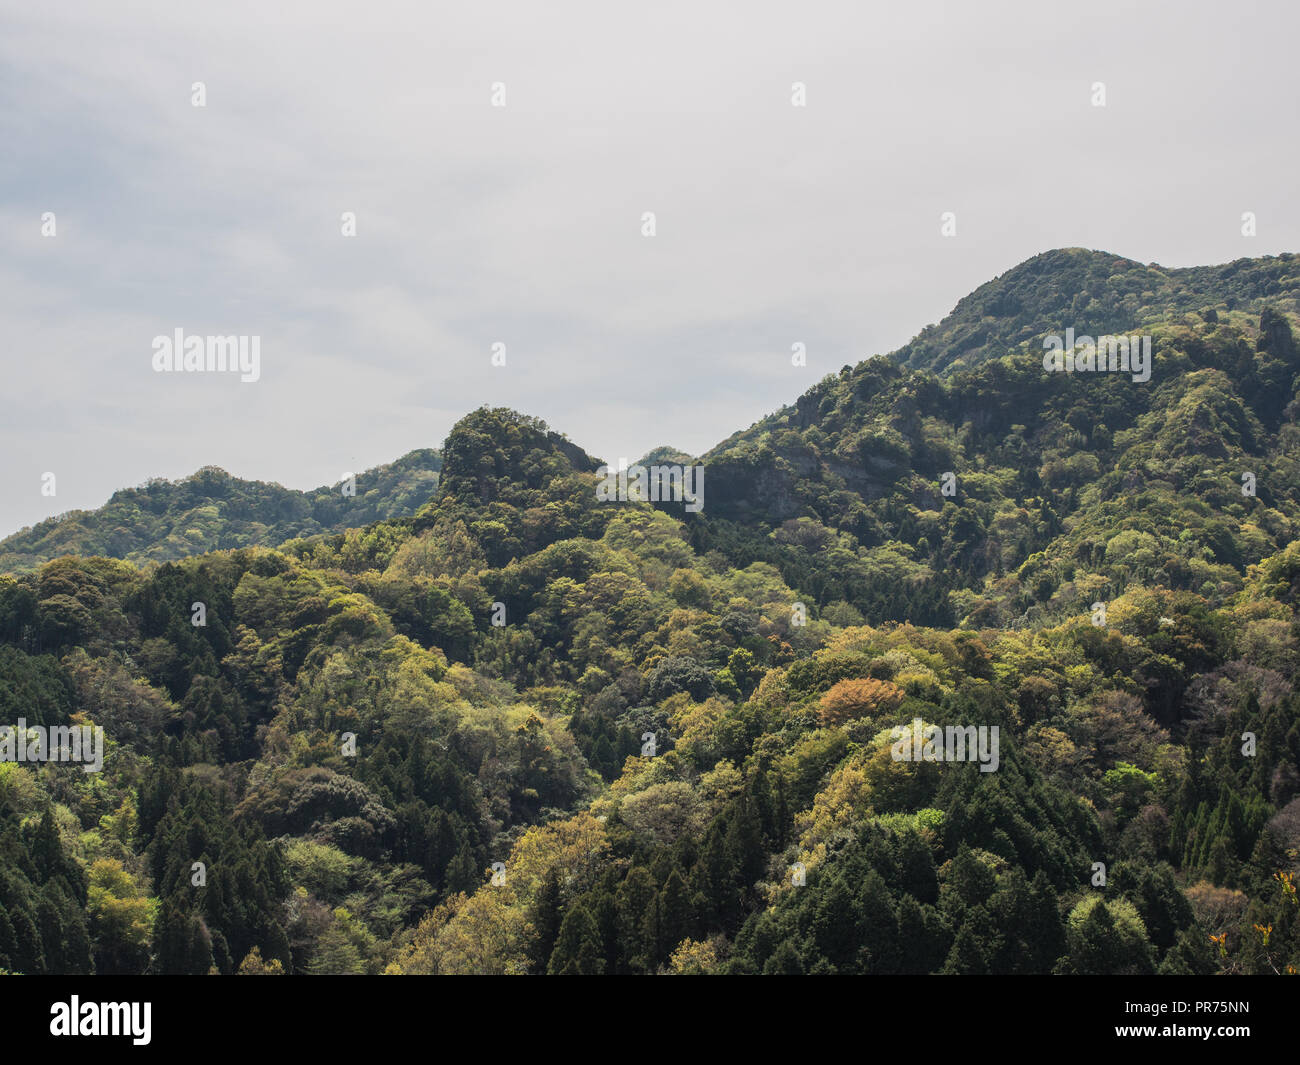 Japanese silviculture. Conifers planted in groves,  amongst natural hardwood forest, Kunisaki Hanto, Oita, Kyushu - Stock Image